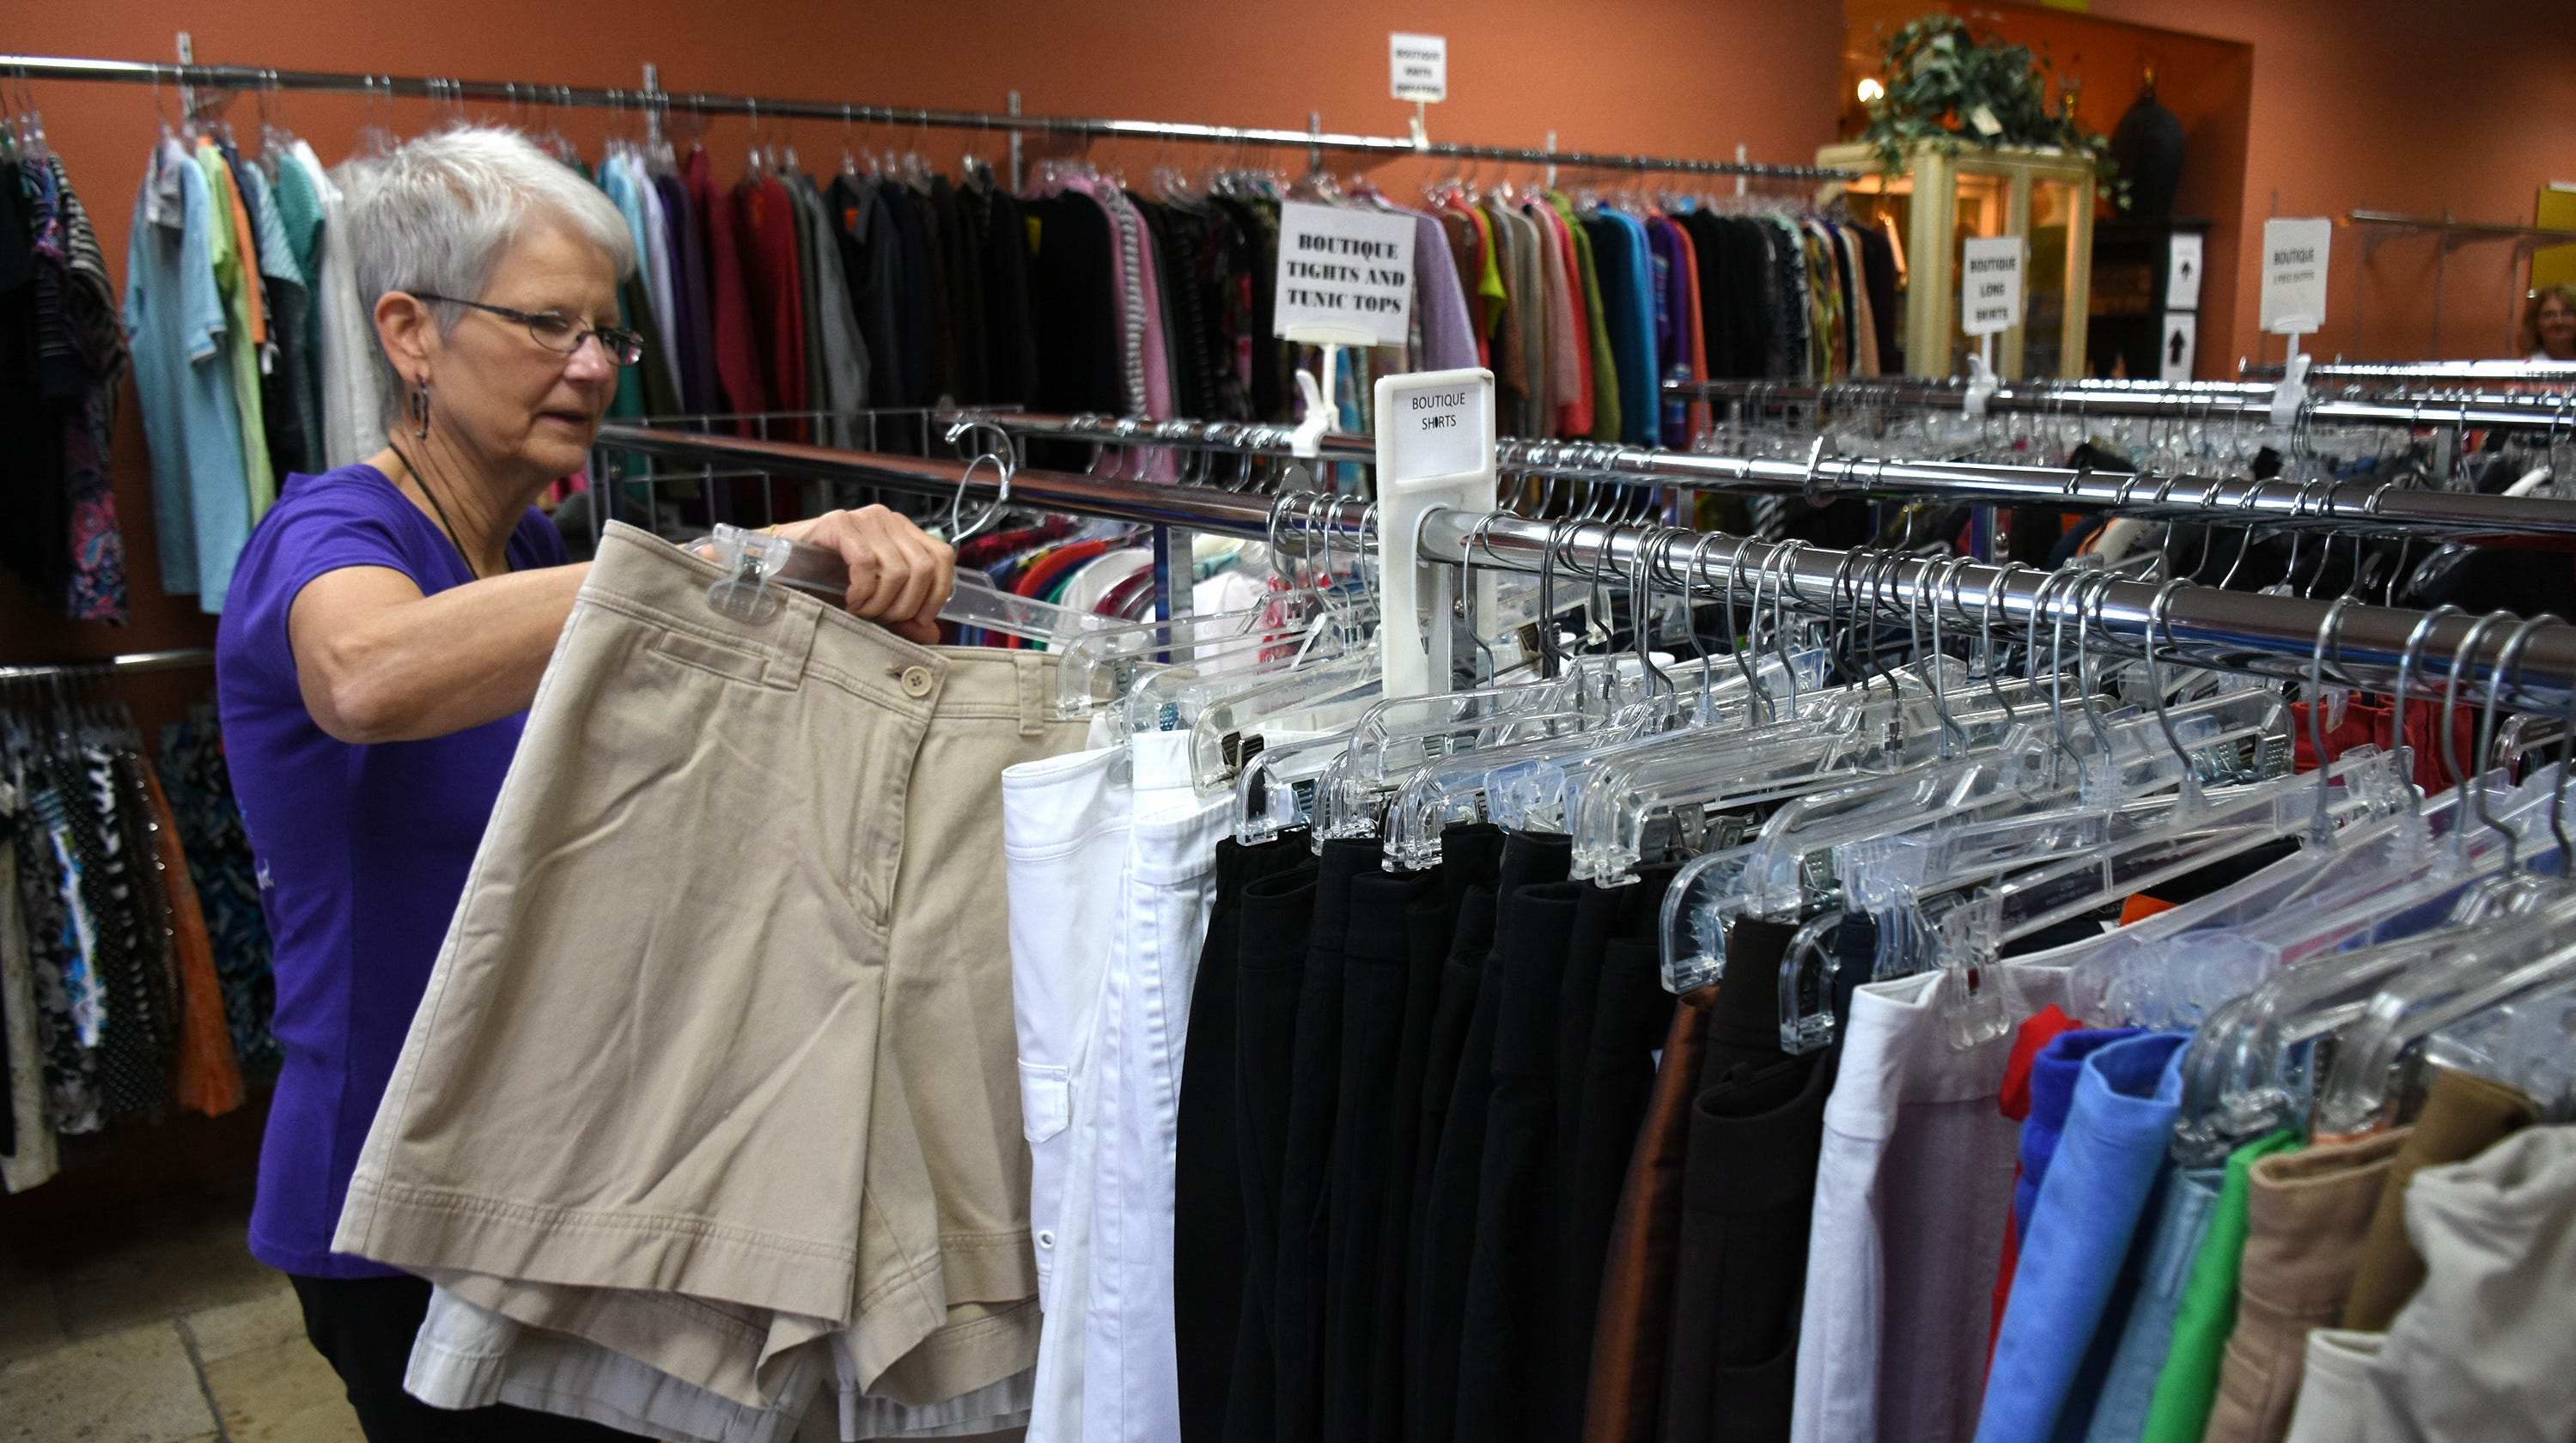 The merchandise at the Bargain Basket is, well, a bargain. But the United Church of Marco Island, which operates the Bargain Basket Thrift Store.